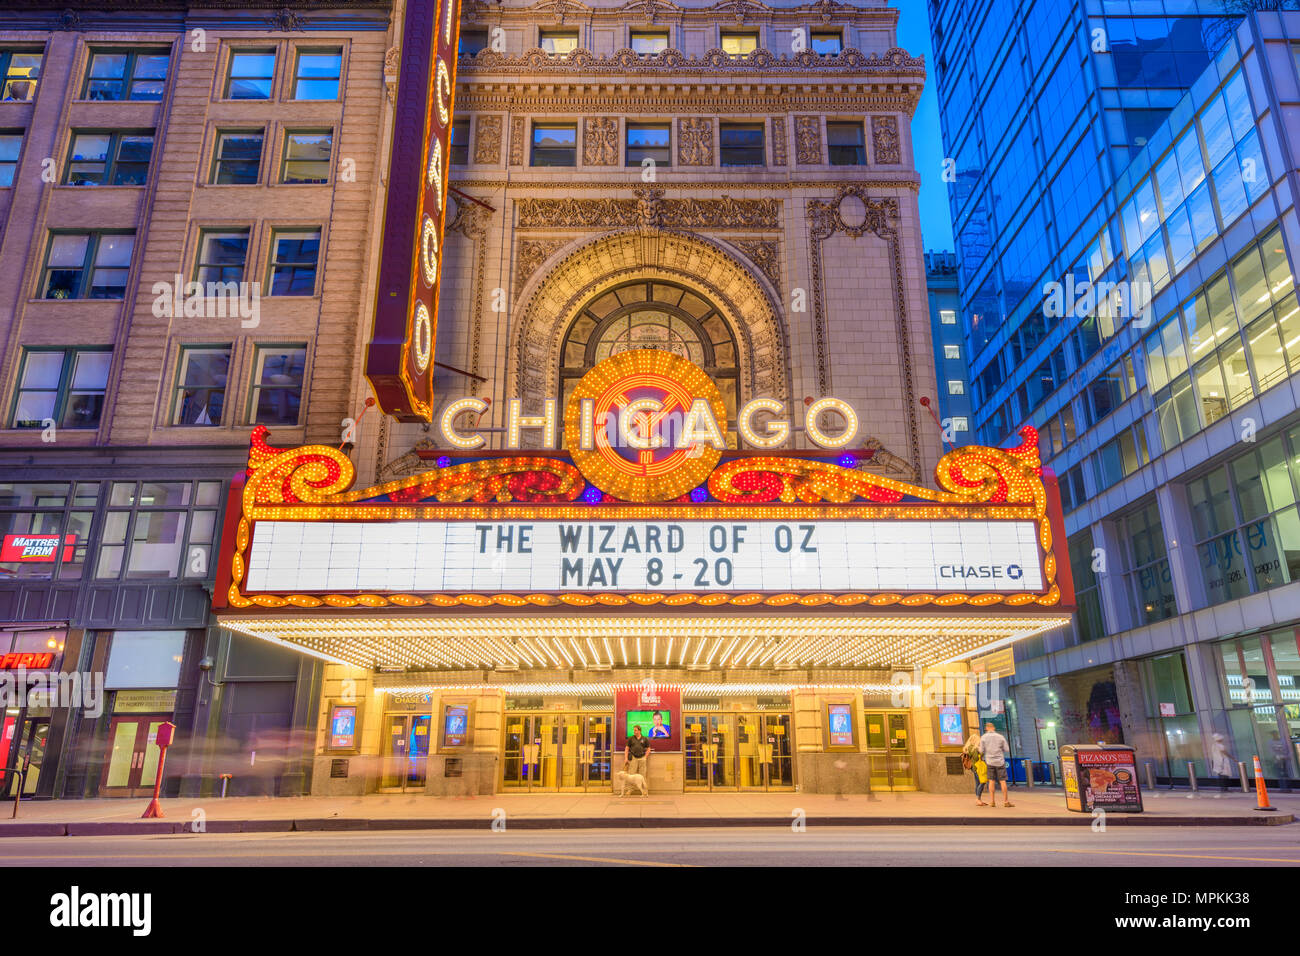 CHICAGO, ILLINOIS - MAY 10, 2018: The landmark Chicago Theatre on state Street at twilight. The historic theater dates from 1921. Stock Photo